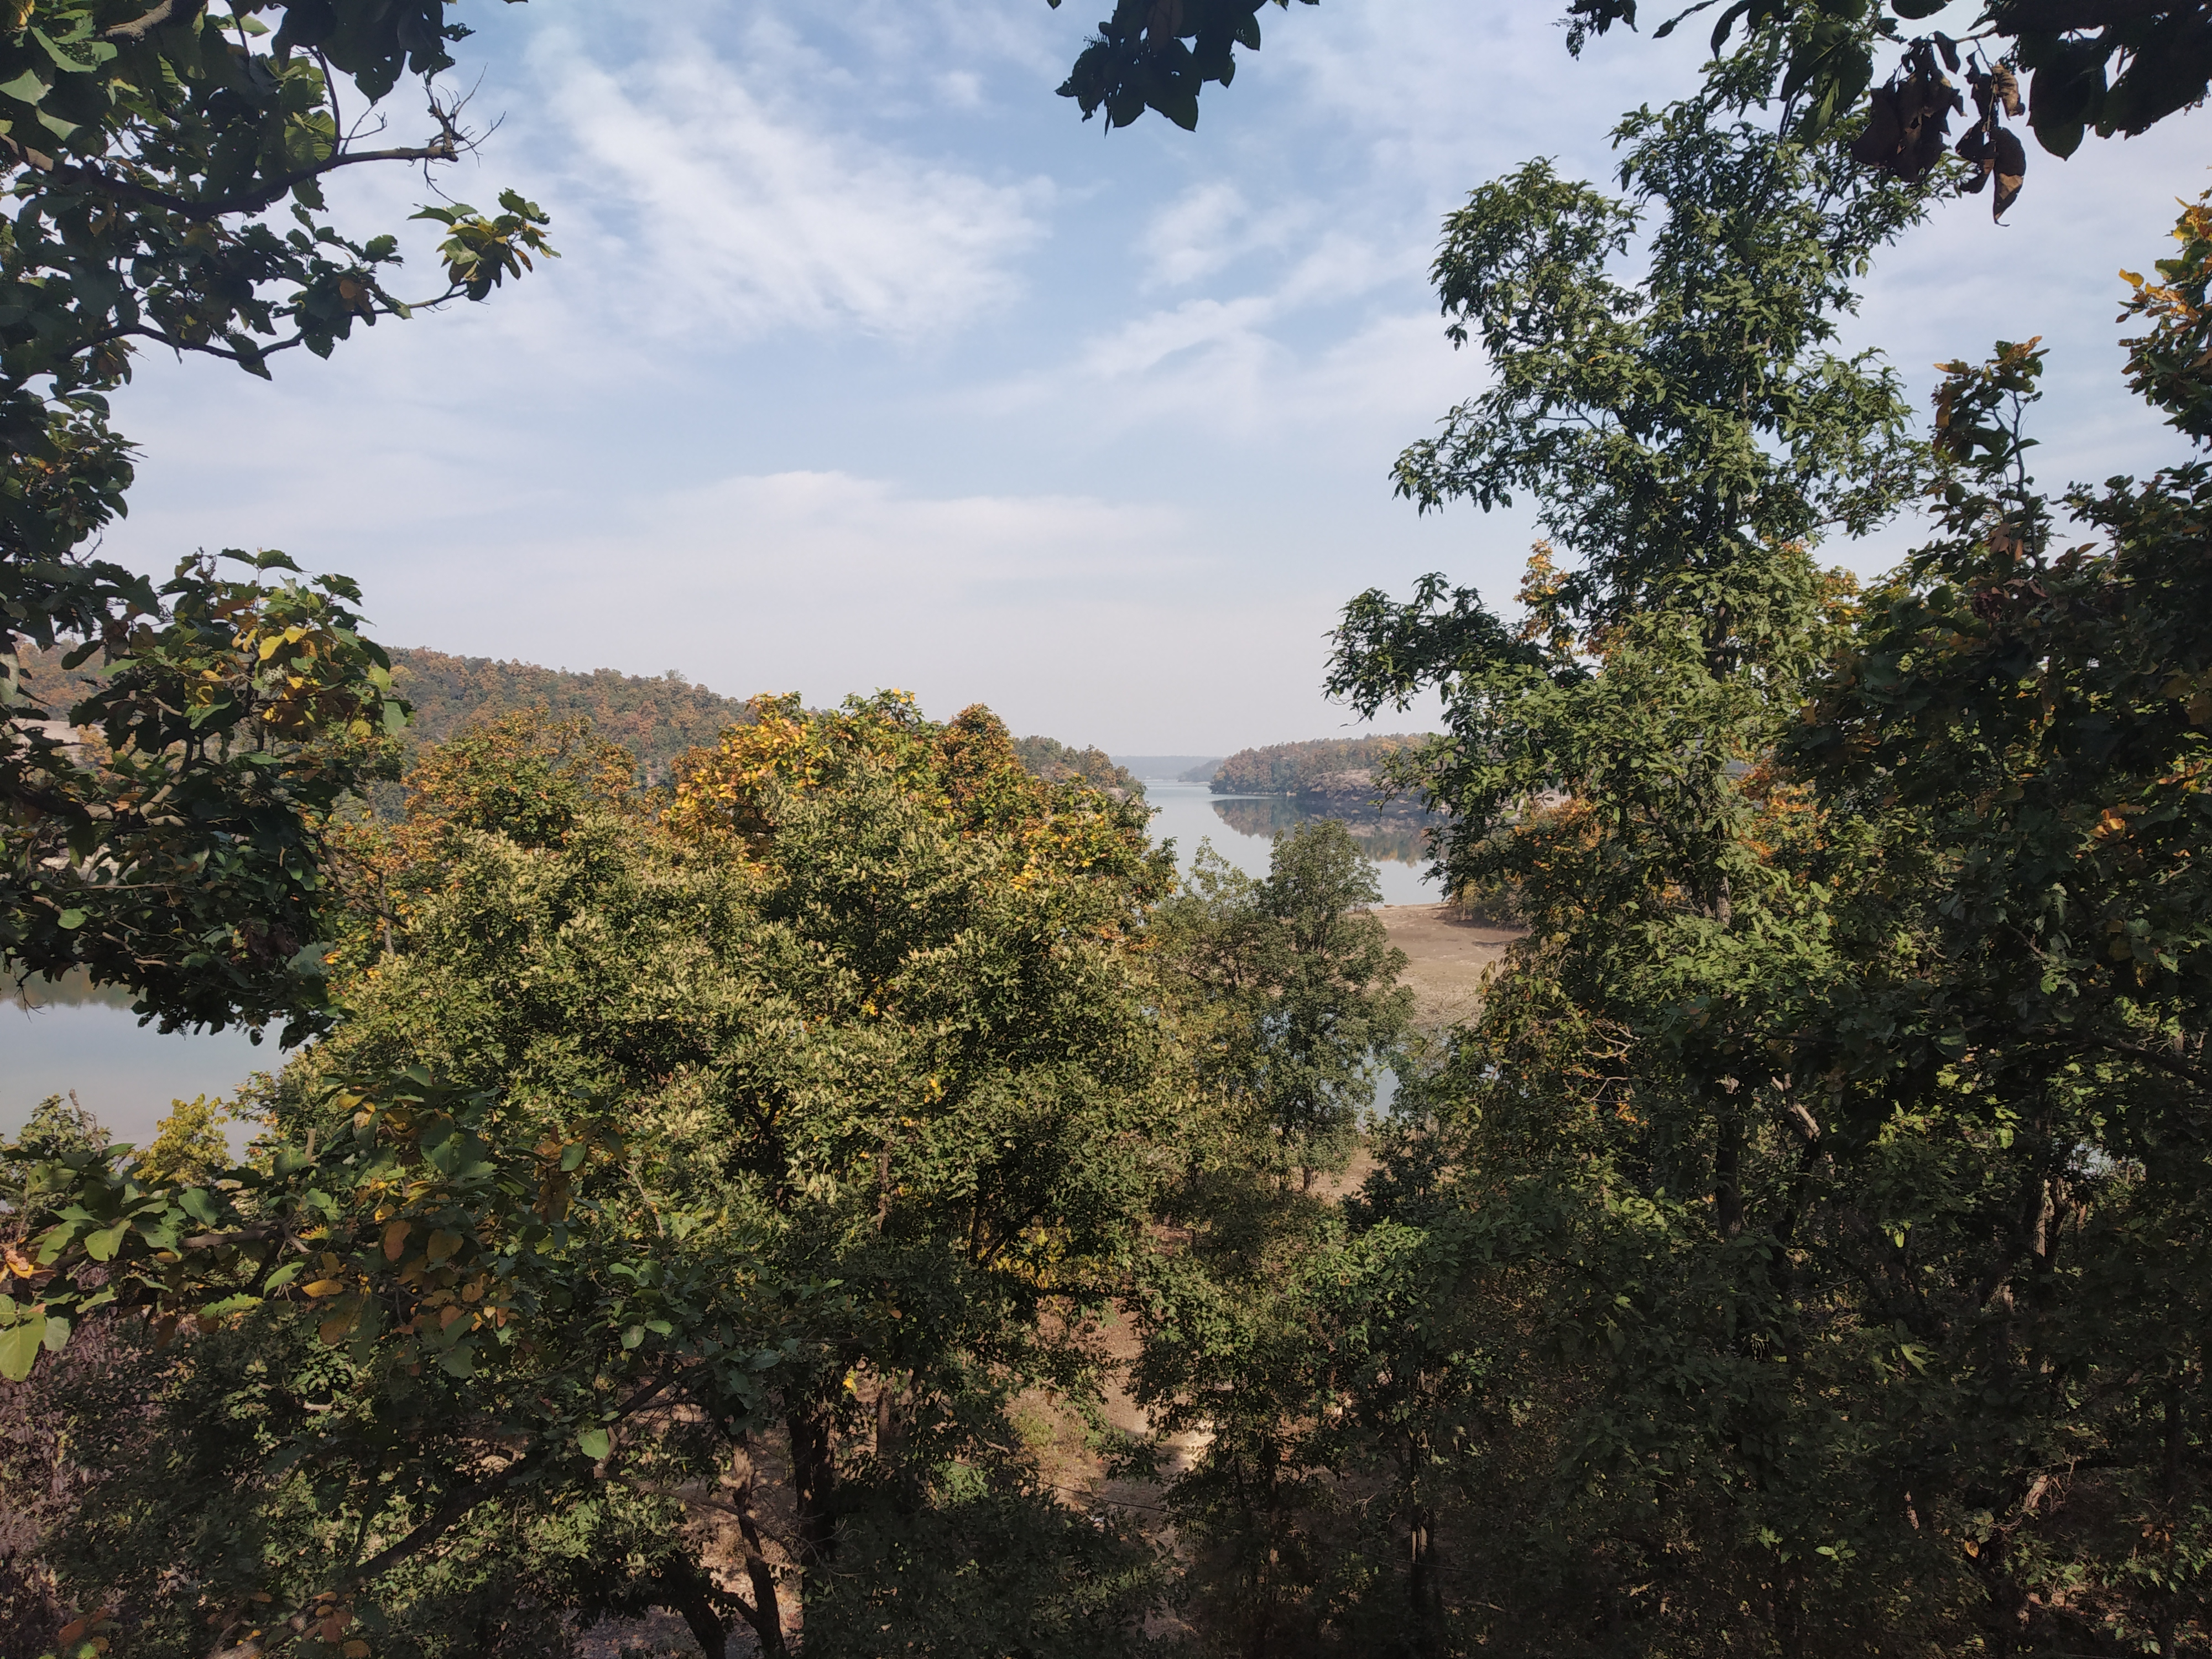 Hasdeo Aranya forests - ancestral lands of the Gond people and elephant habitat.